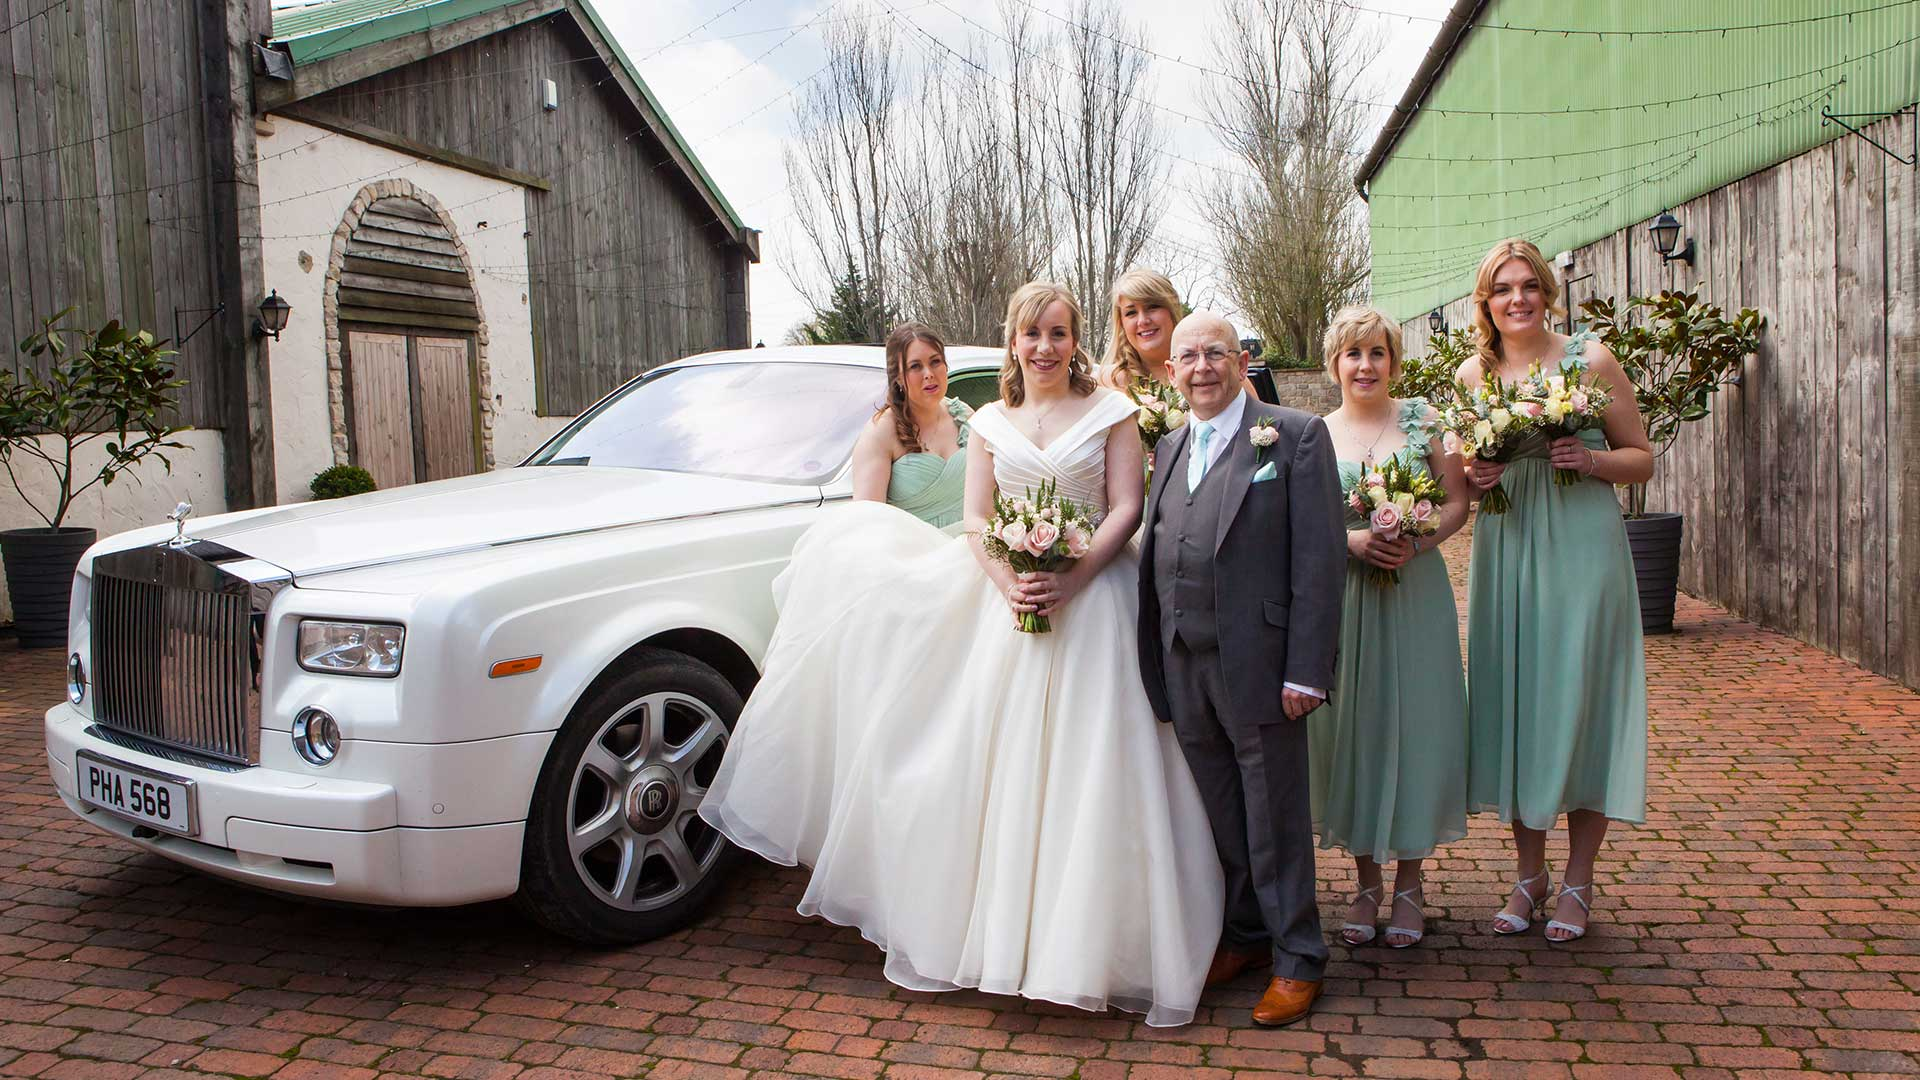 The bride, father and her bridesmaids with the Rolls-Royce Phantom